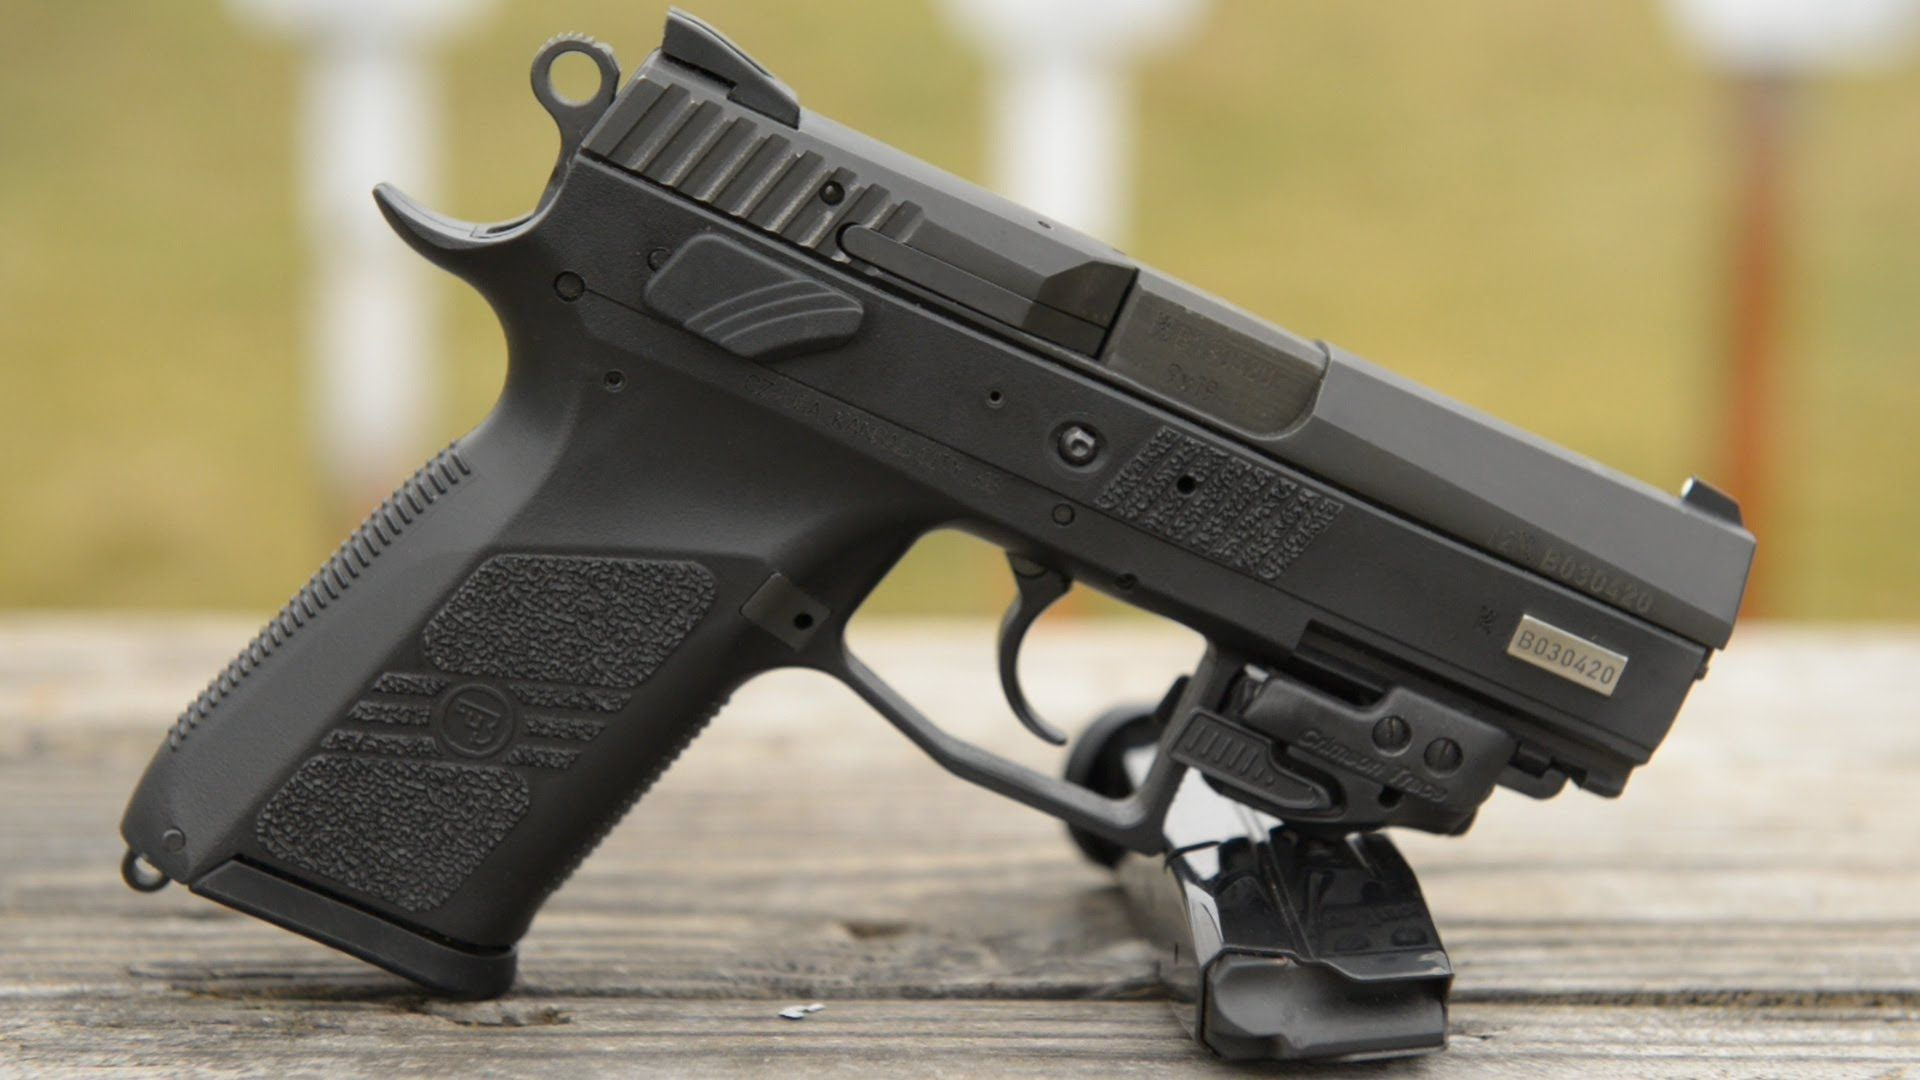 CZ 75 P-07 Duty  This thing is sweet  If only the barrel